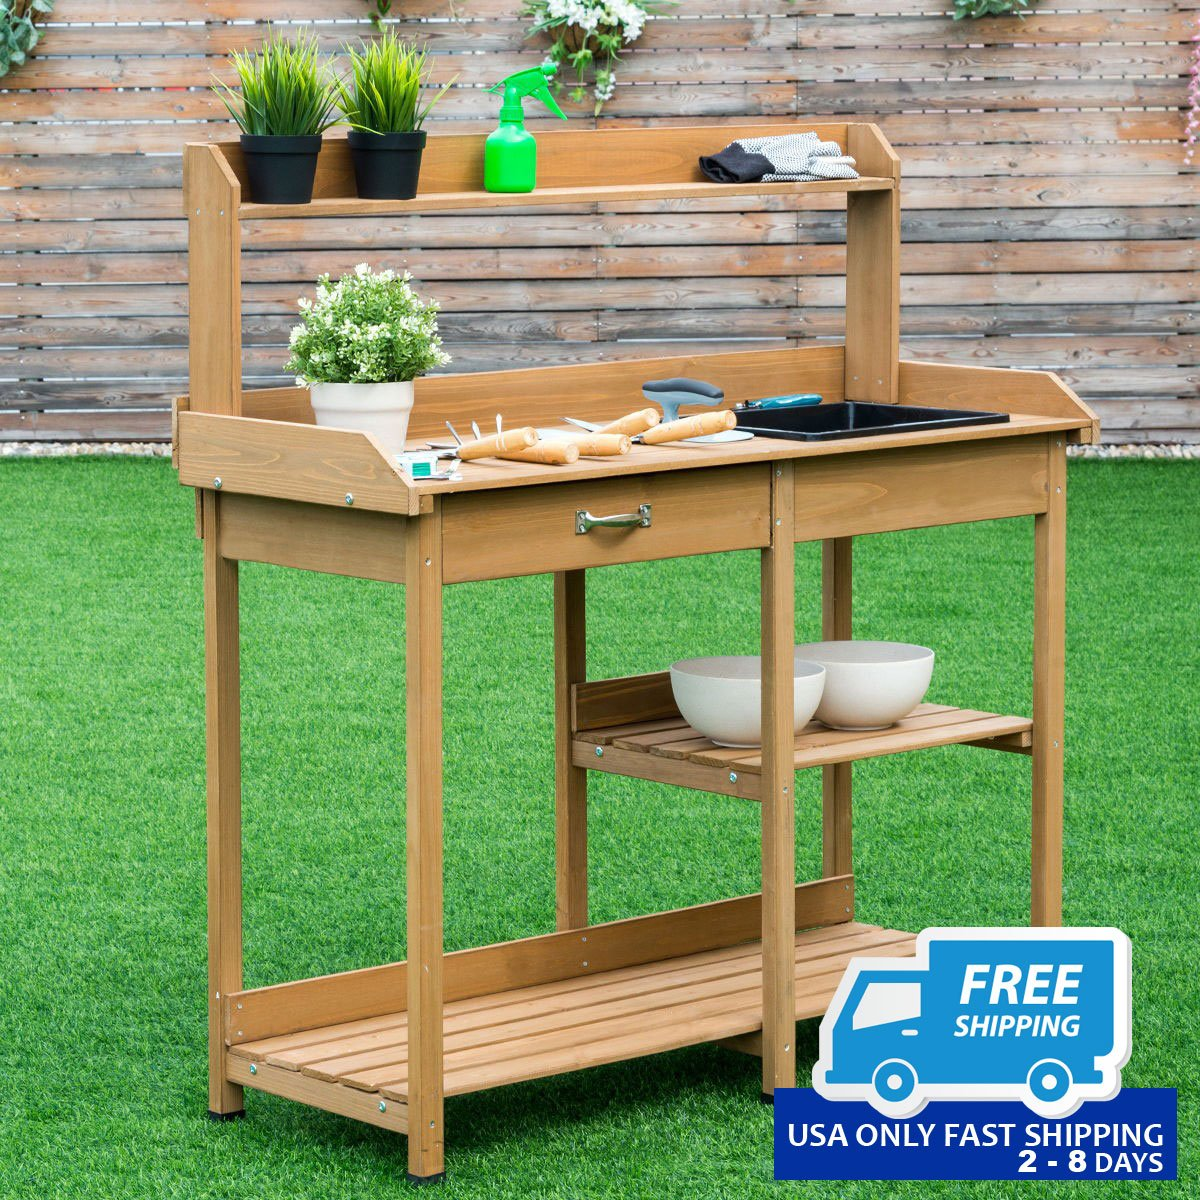 Wooden Bench Table Garden Wooden Planting Potting Bench Table With Shelves